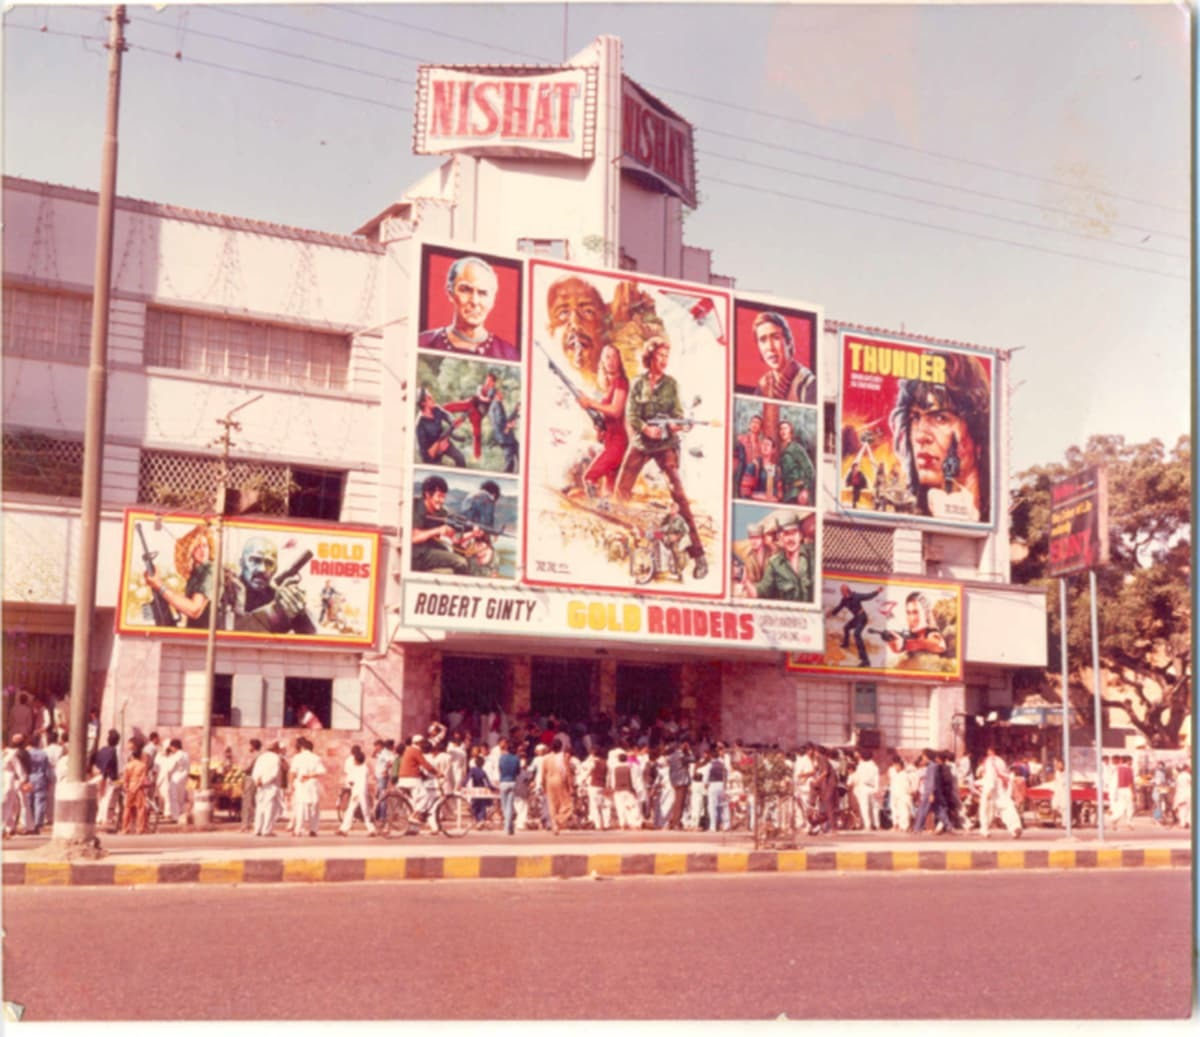 In the 1980s and 90s in Pakistan cinemas were few and far in between. The Nishat in Karachi was a popular cinema. Photo courtesy: The Citizens Archives of Pakistan